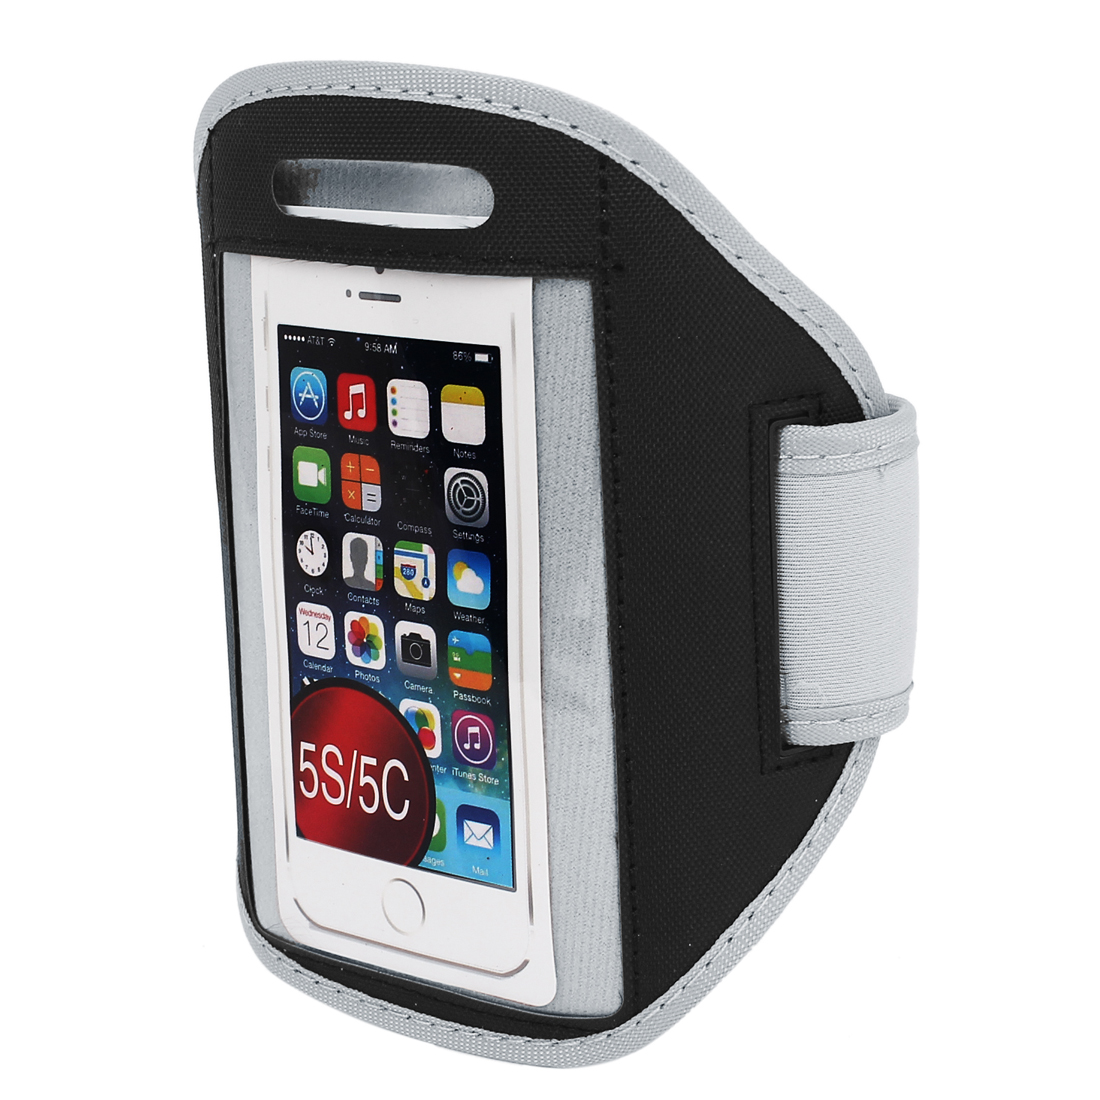 Outdoor Sports Jogging Gym Armband Case Cover Holder Black for iPhone 5 5C 5S